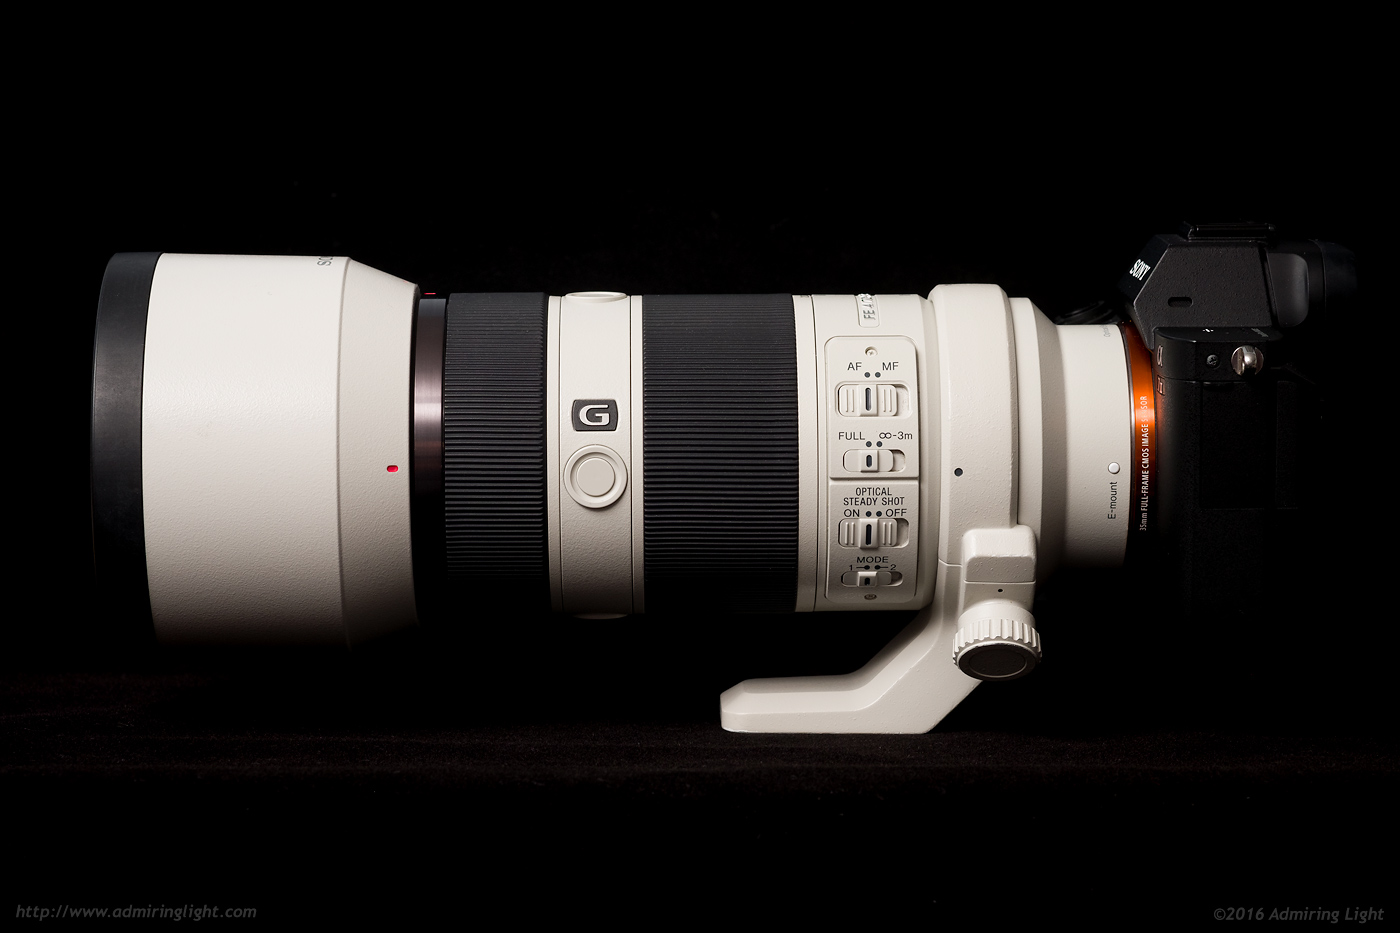 The FE 70-200mm f/4 has a plethora of control switches on the side